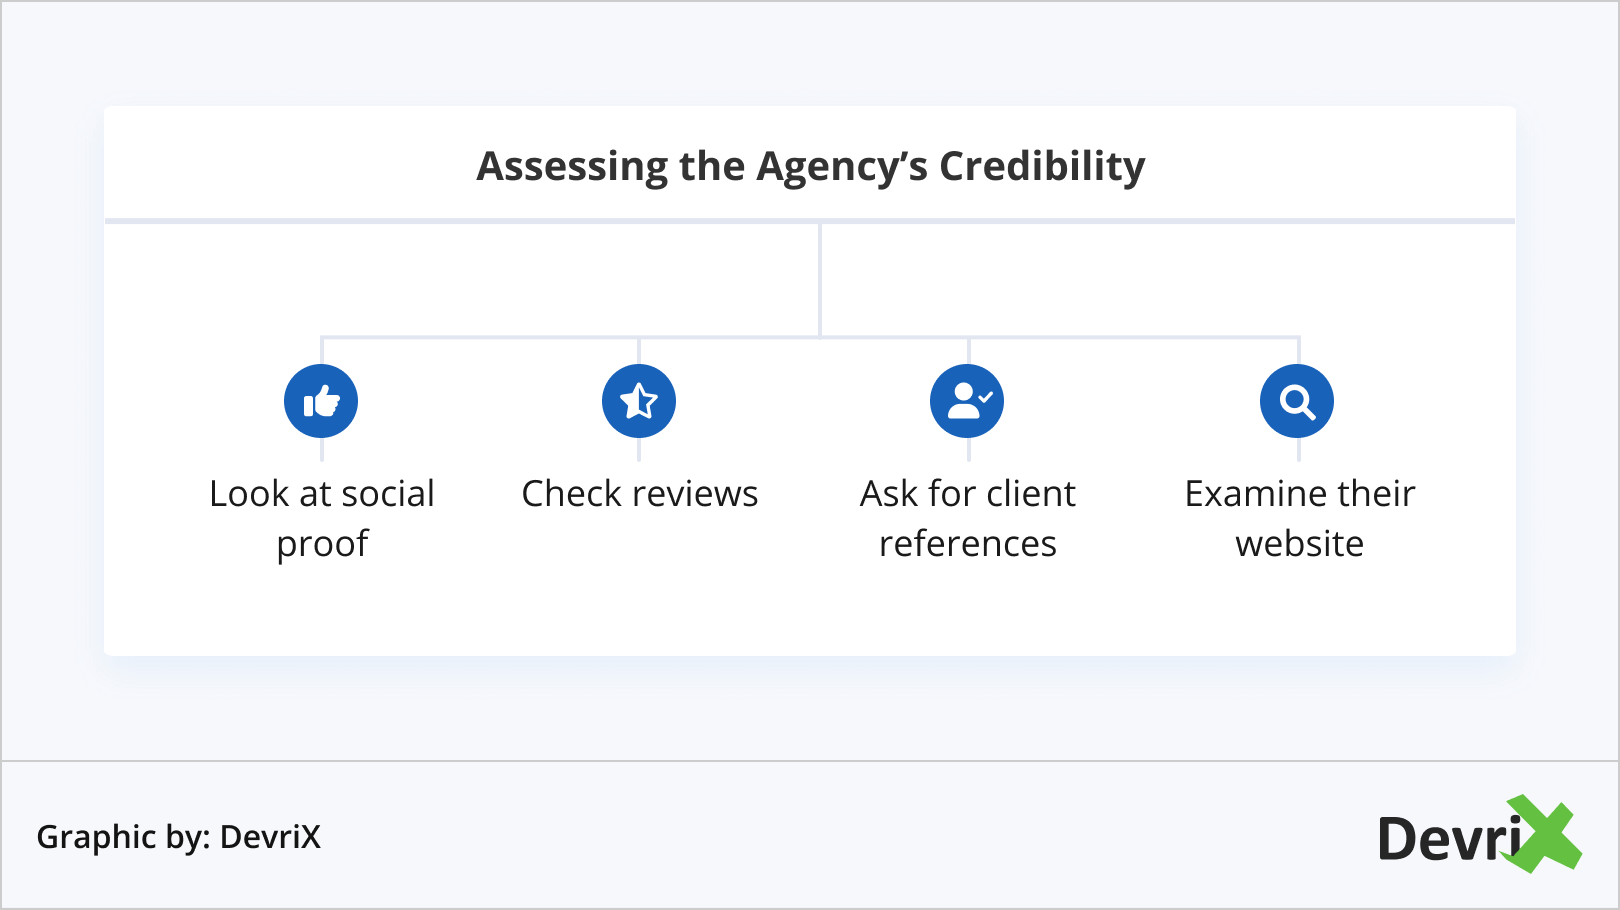 Assessing the Agency's Credibility